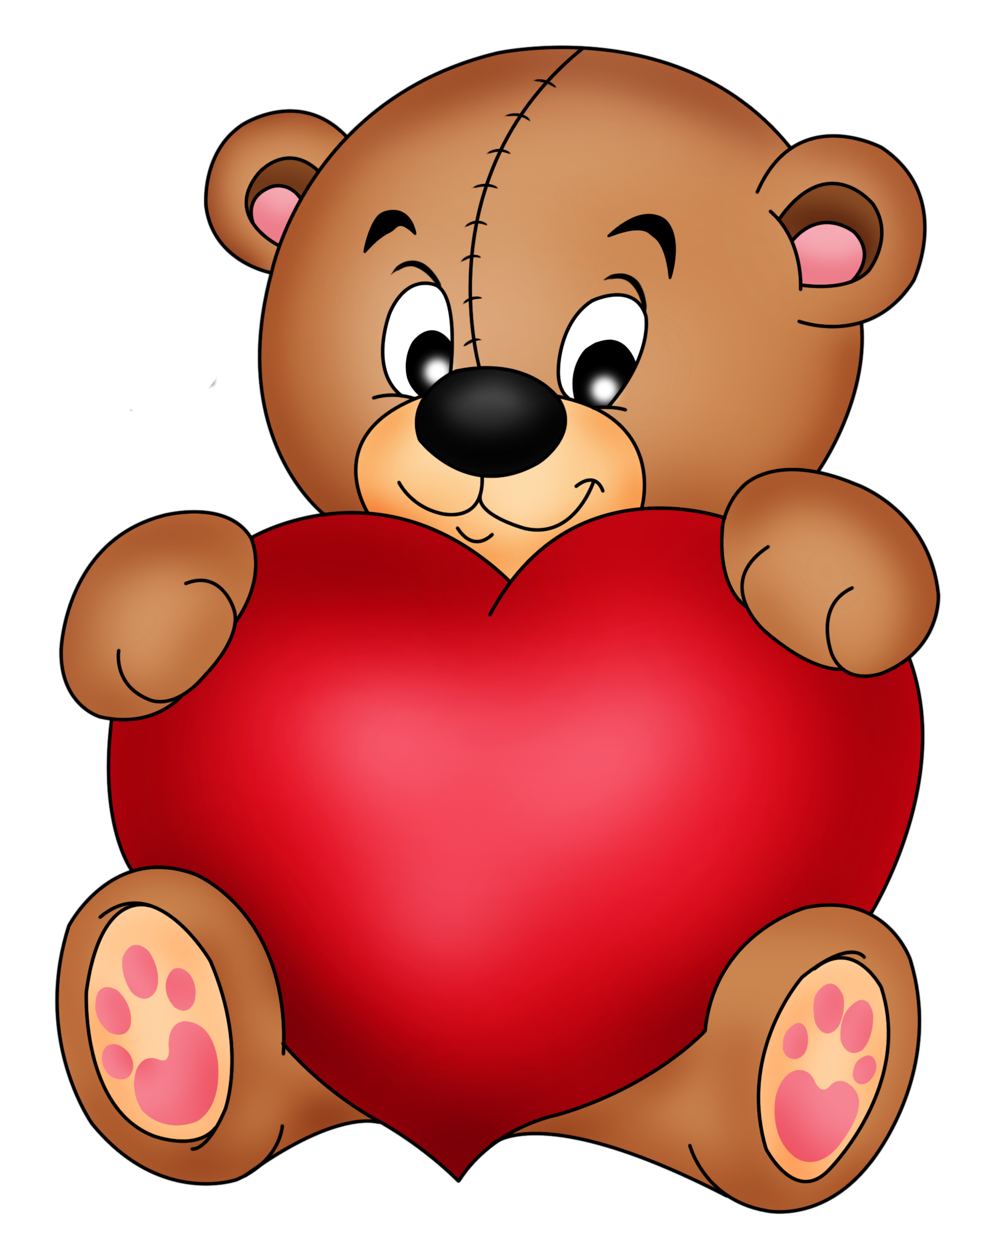 Brown heart clipart clip art black and white download Brown Teddy With Red Heart PNG Clipart clip art black and white download